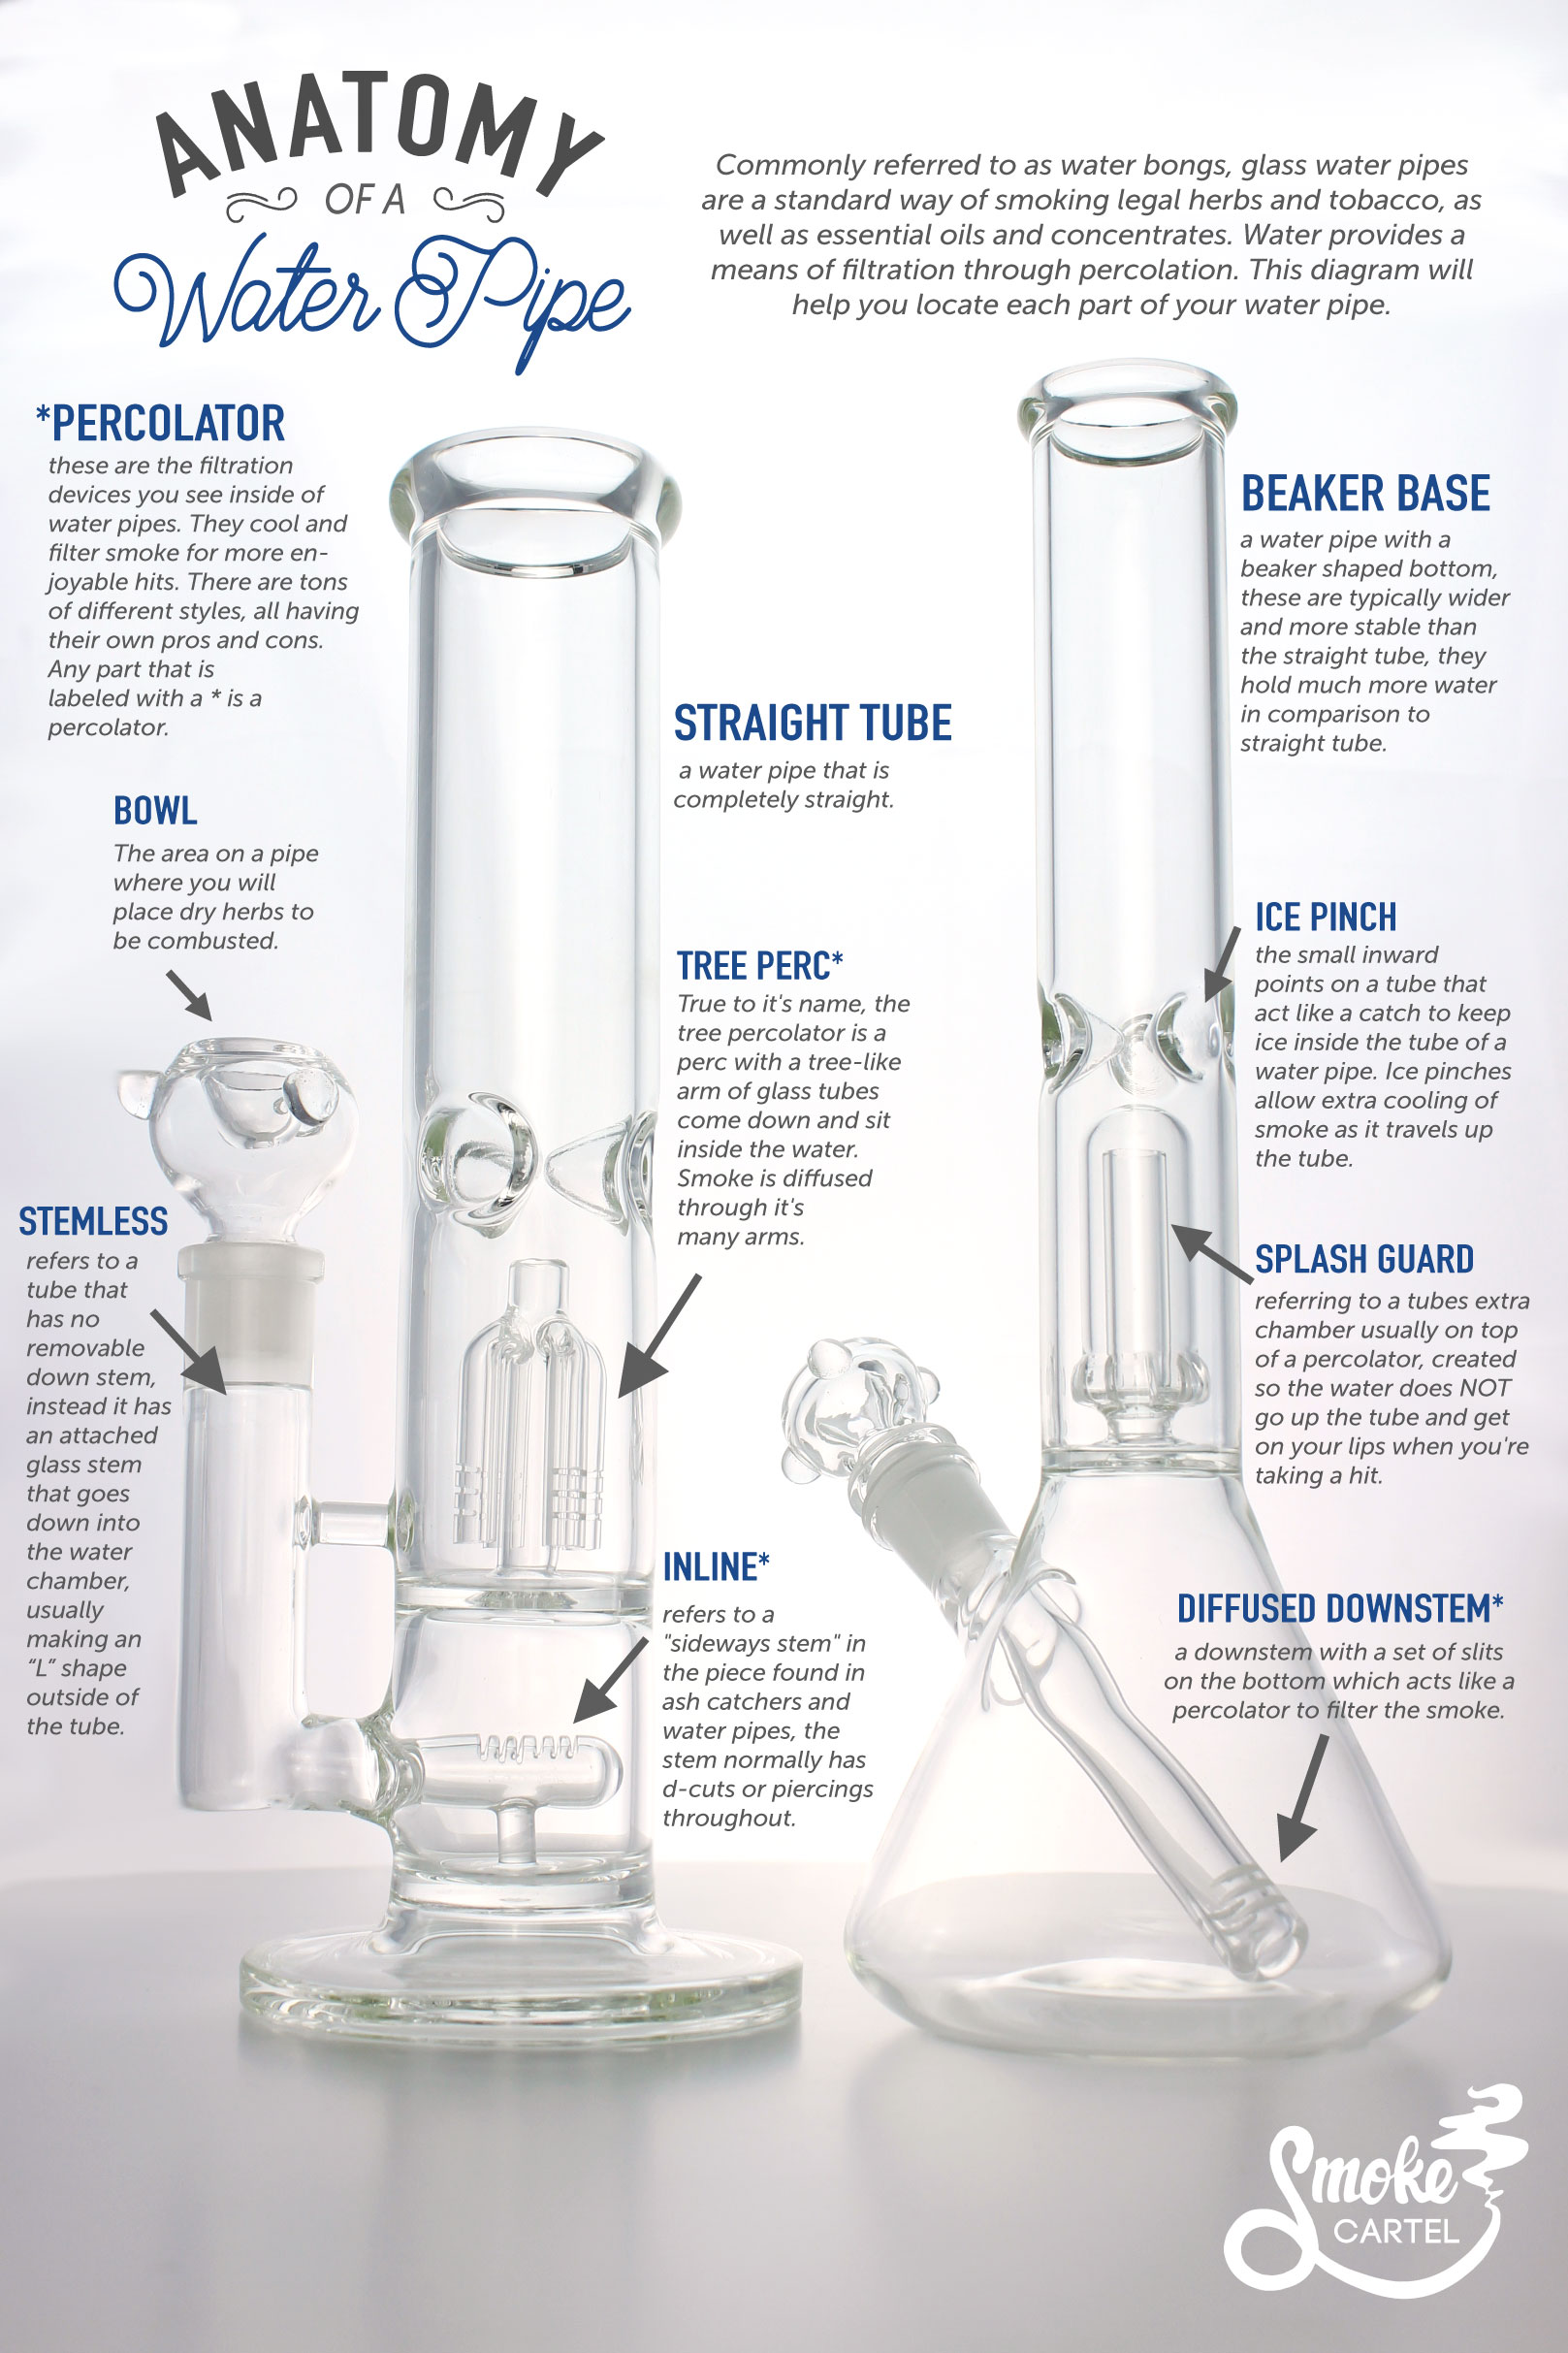 The anatomy of the different bong or water pipe parts